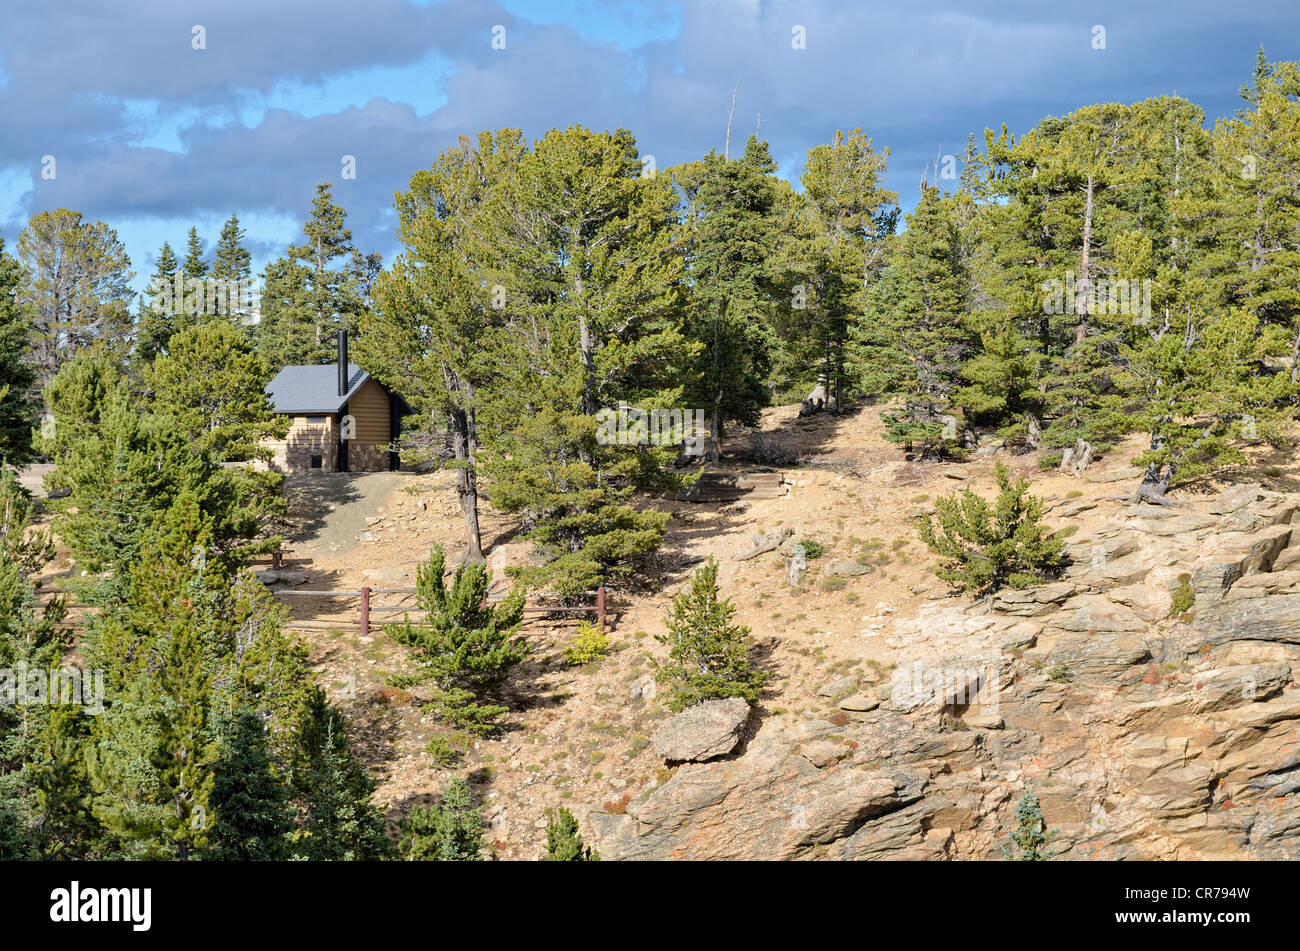 Toilet hut at Juniper Pass, State Road 103, Mount Evans Wilderness Arapaho National Forest, Idaho Springs, Colorado, - Stock Image